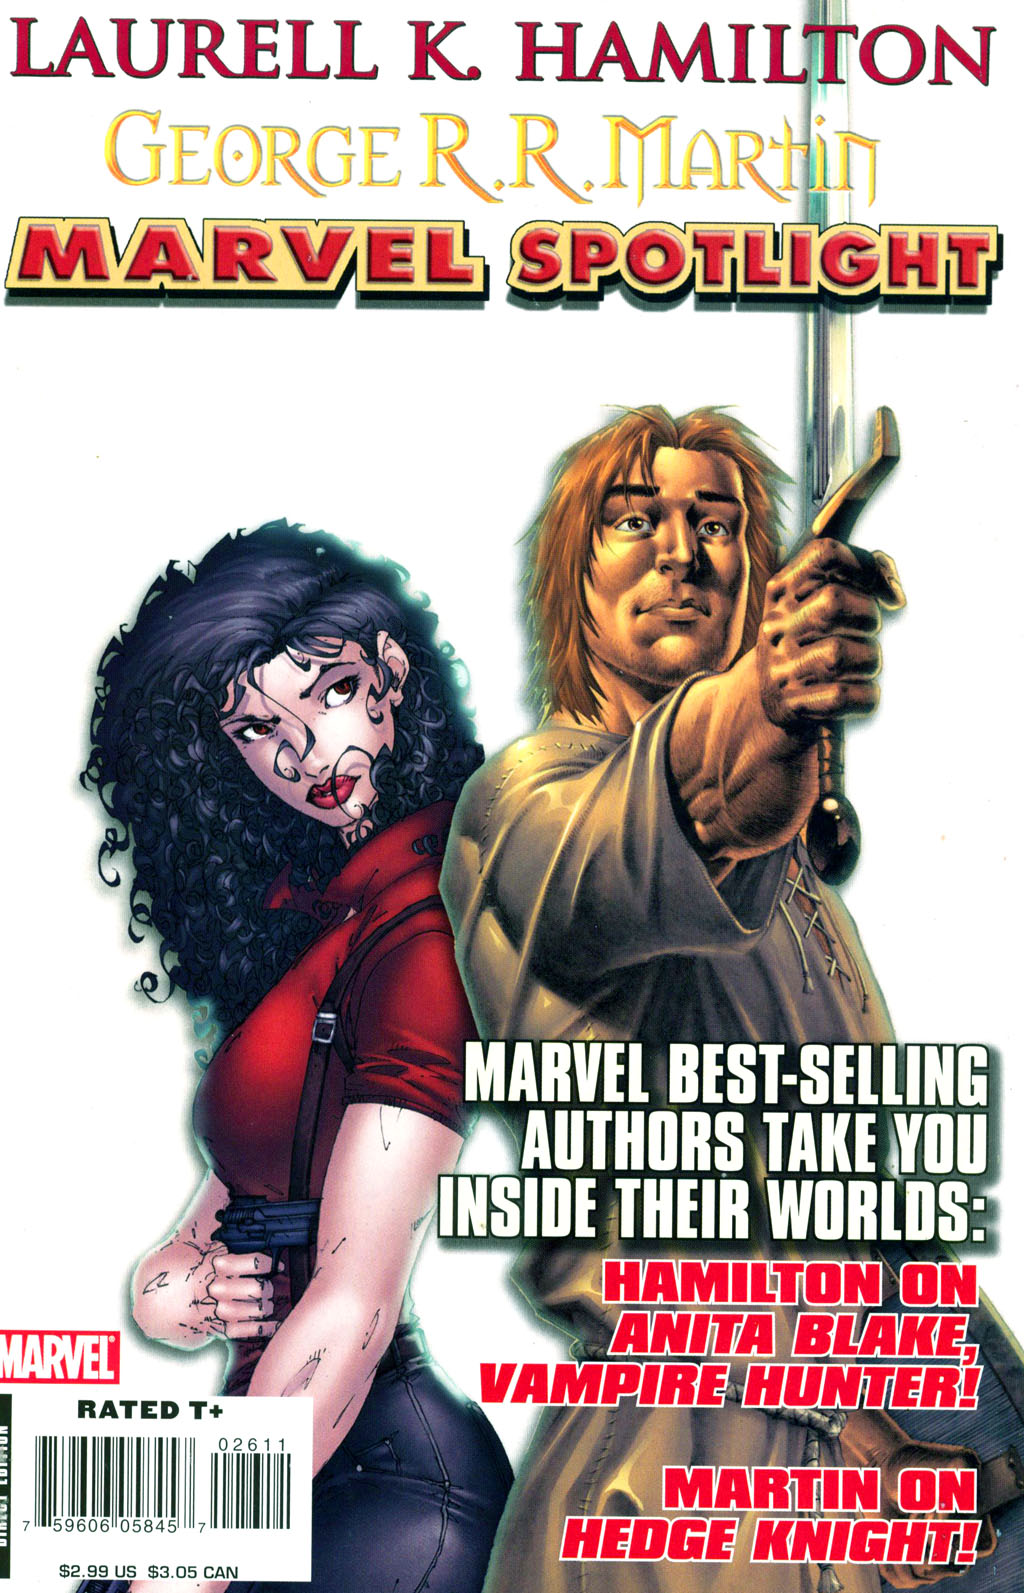 Marvel Spotlight: Laurell K. Hamilton / George R.R. Martin Vol 1 1